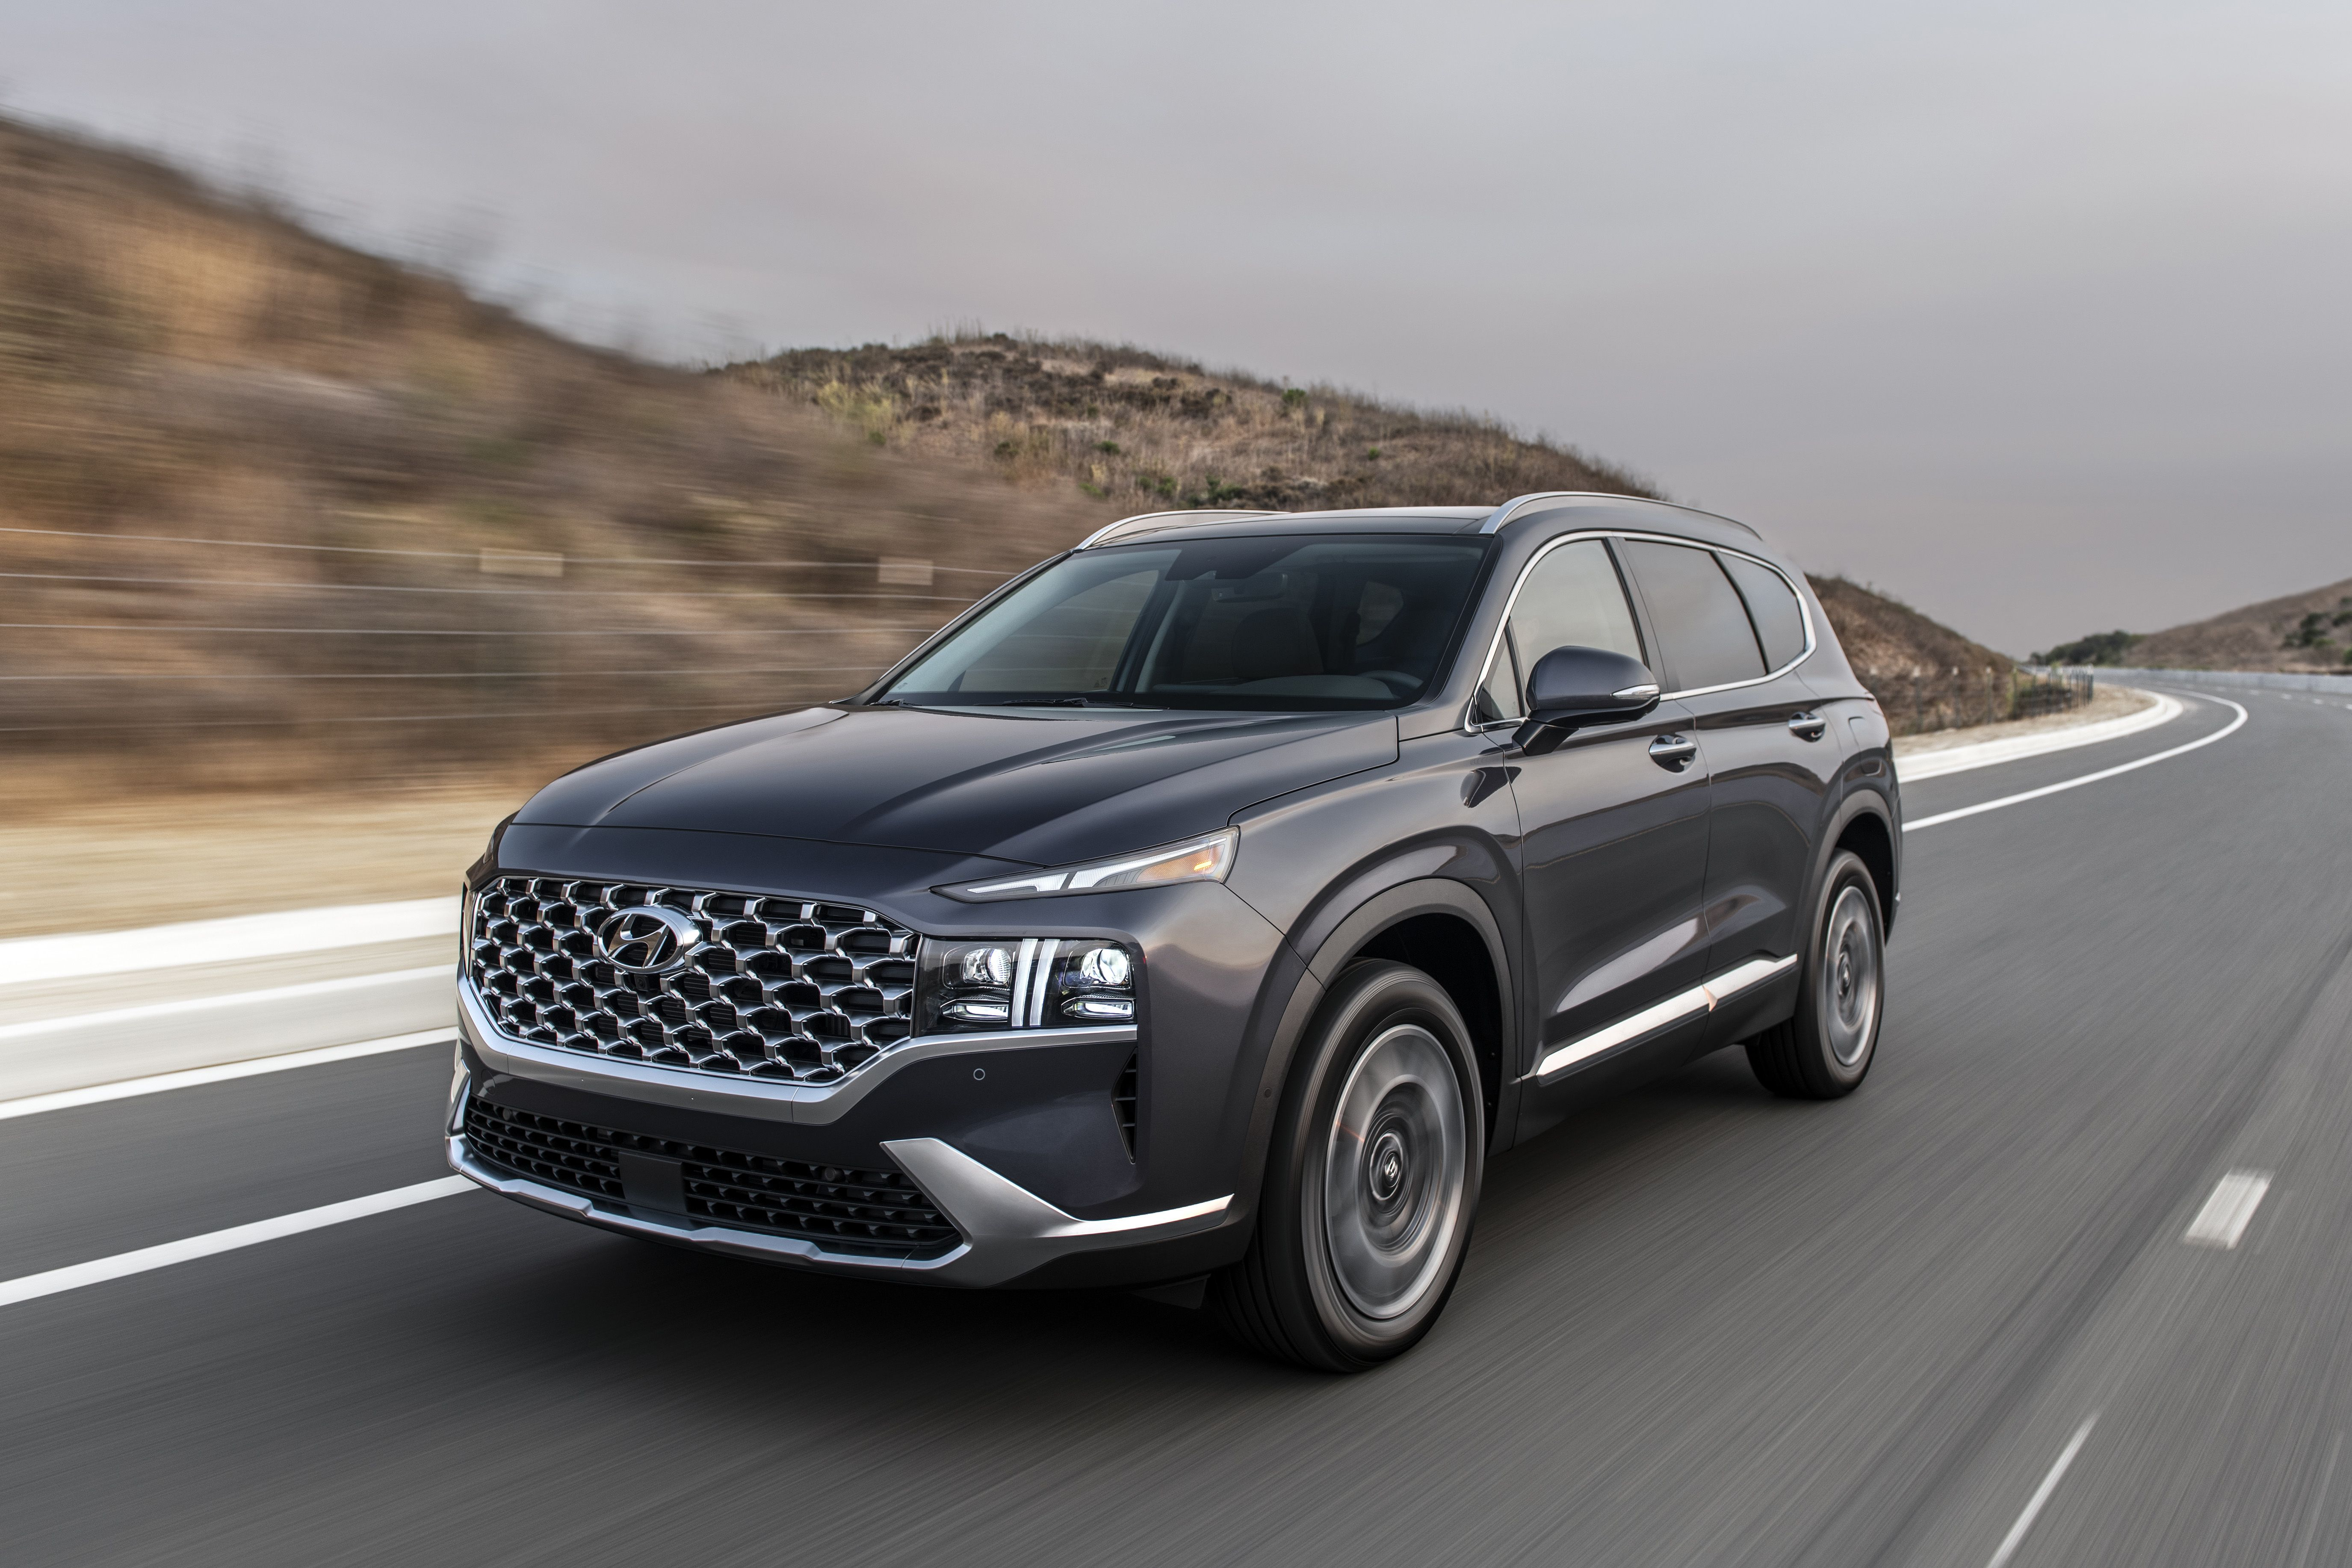 Hyundai Santa Fe Gets A New Look And New Engines For 2021